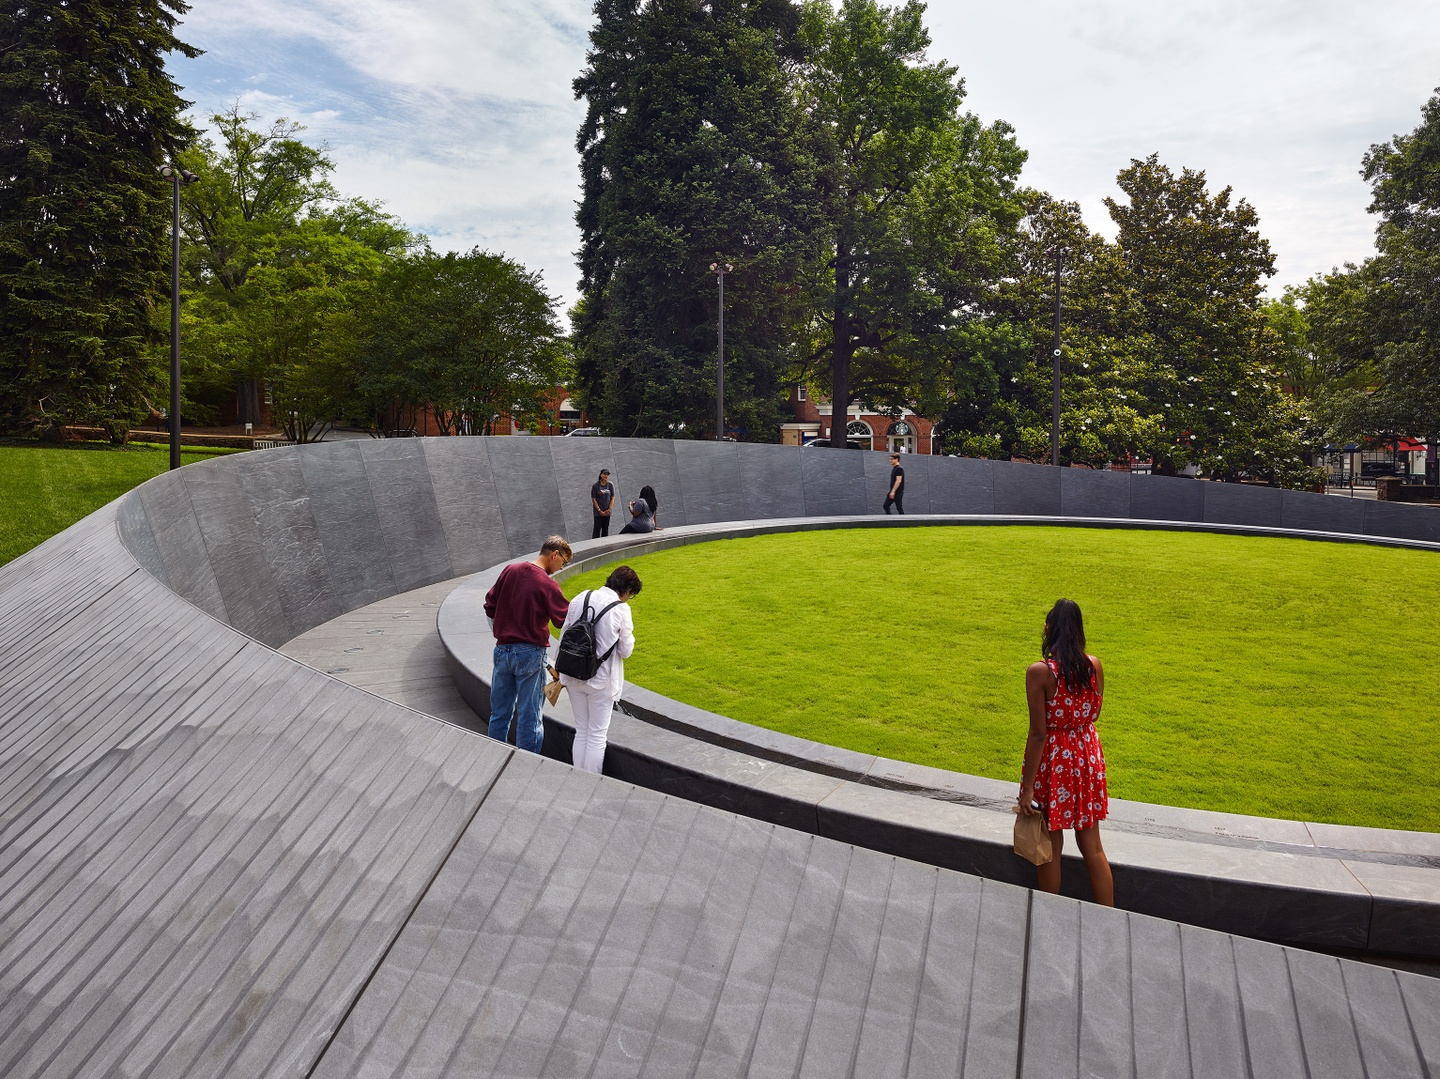 Photo showing a portion of the gray, curved memorial wall, with people walking inside it; the memorial surrounds a ovular patch of grass.